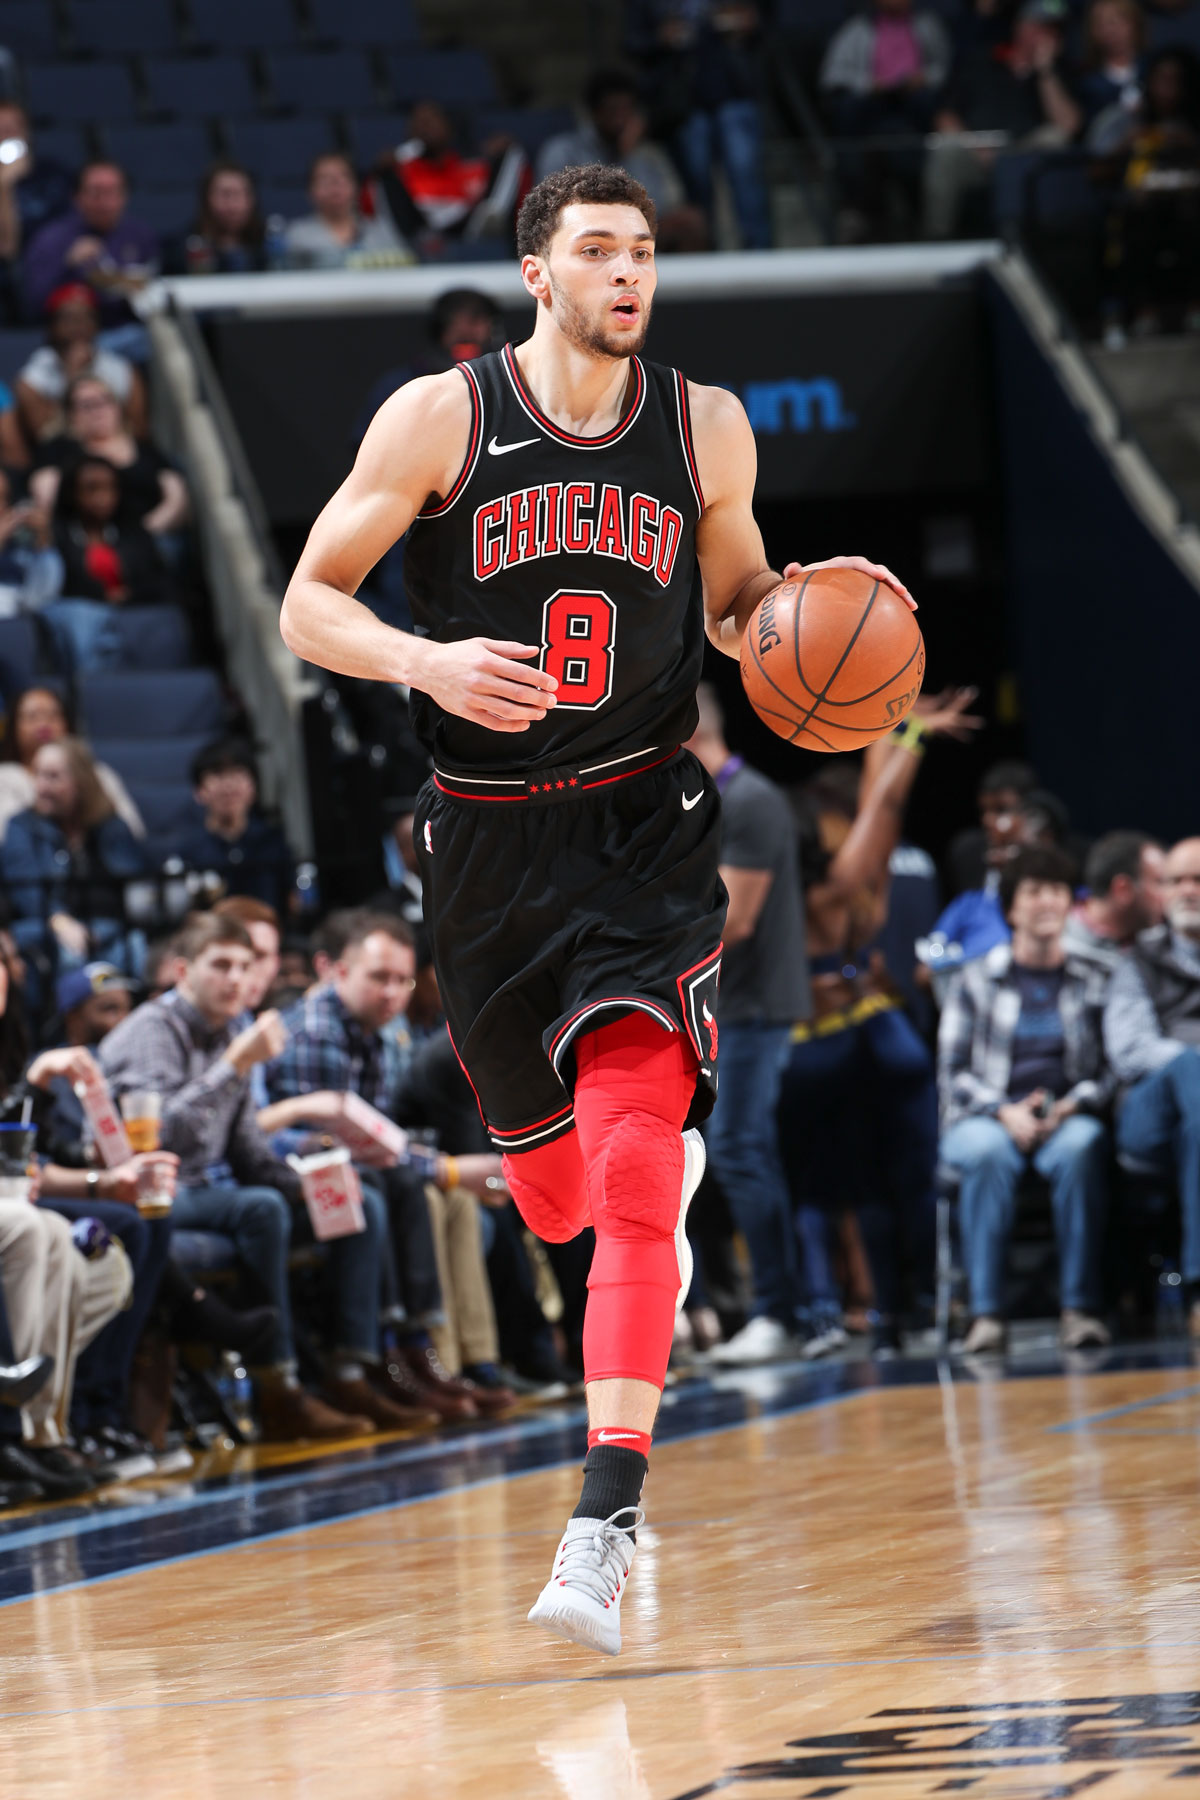 Zach LaVine #8 of the Chicago Bulls handles the ball during the game against the Memphis Grizzlies on March 15, 2018